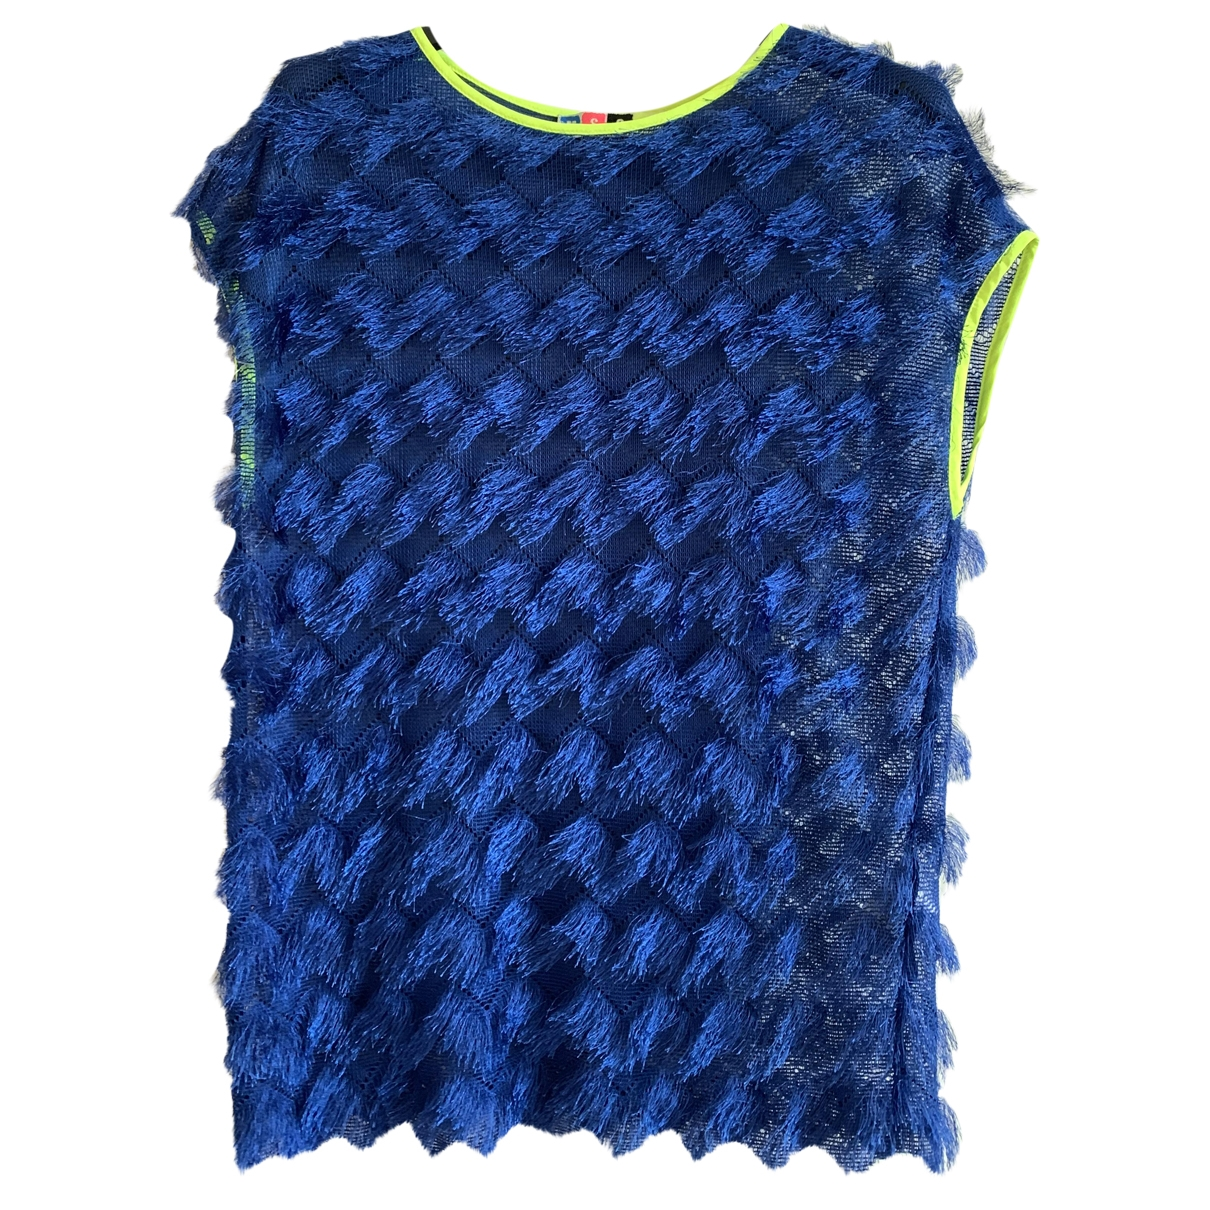 Msgm \N Blue  top for Women 42 IT